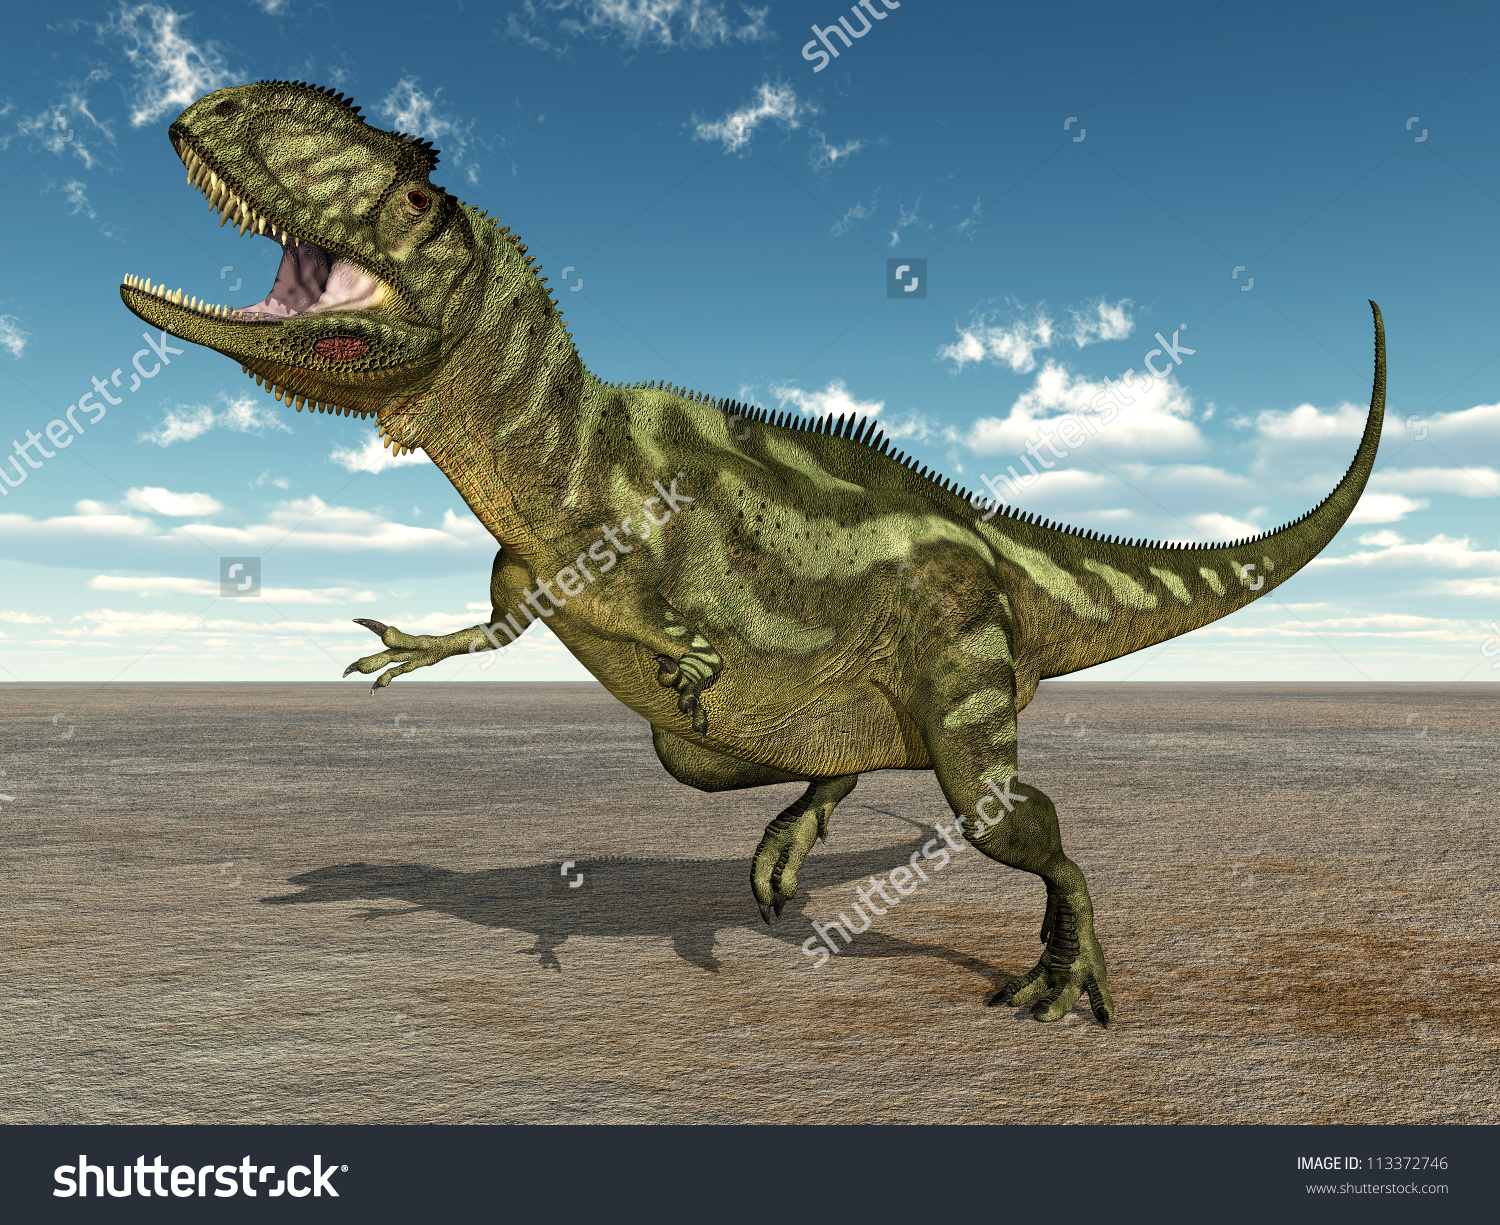 The Yangchuanosaurus b...